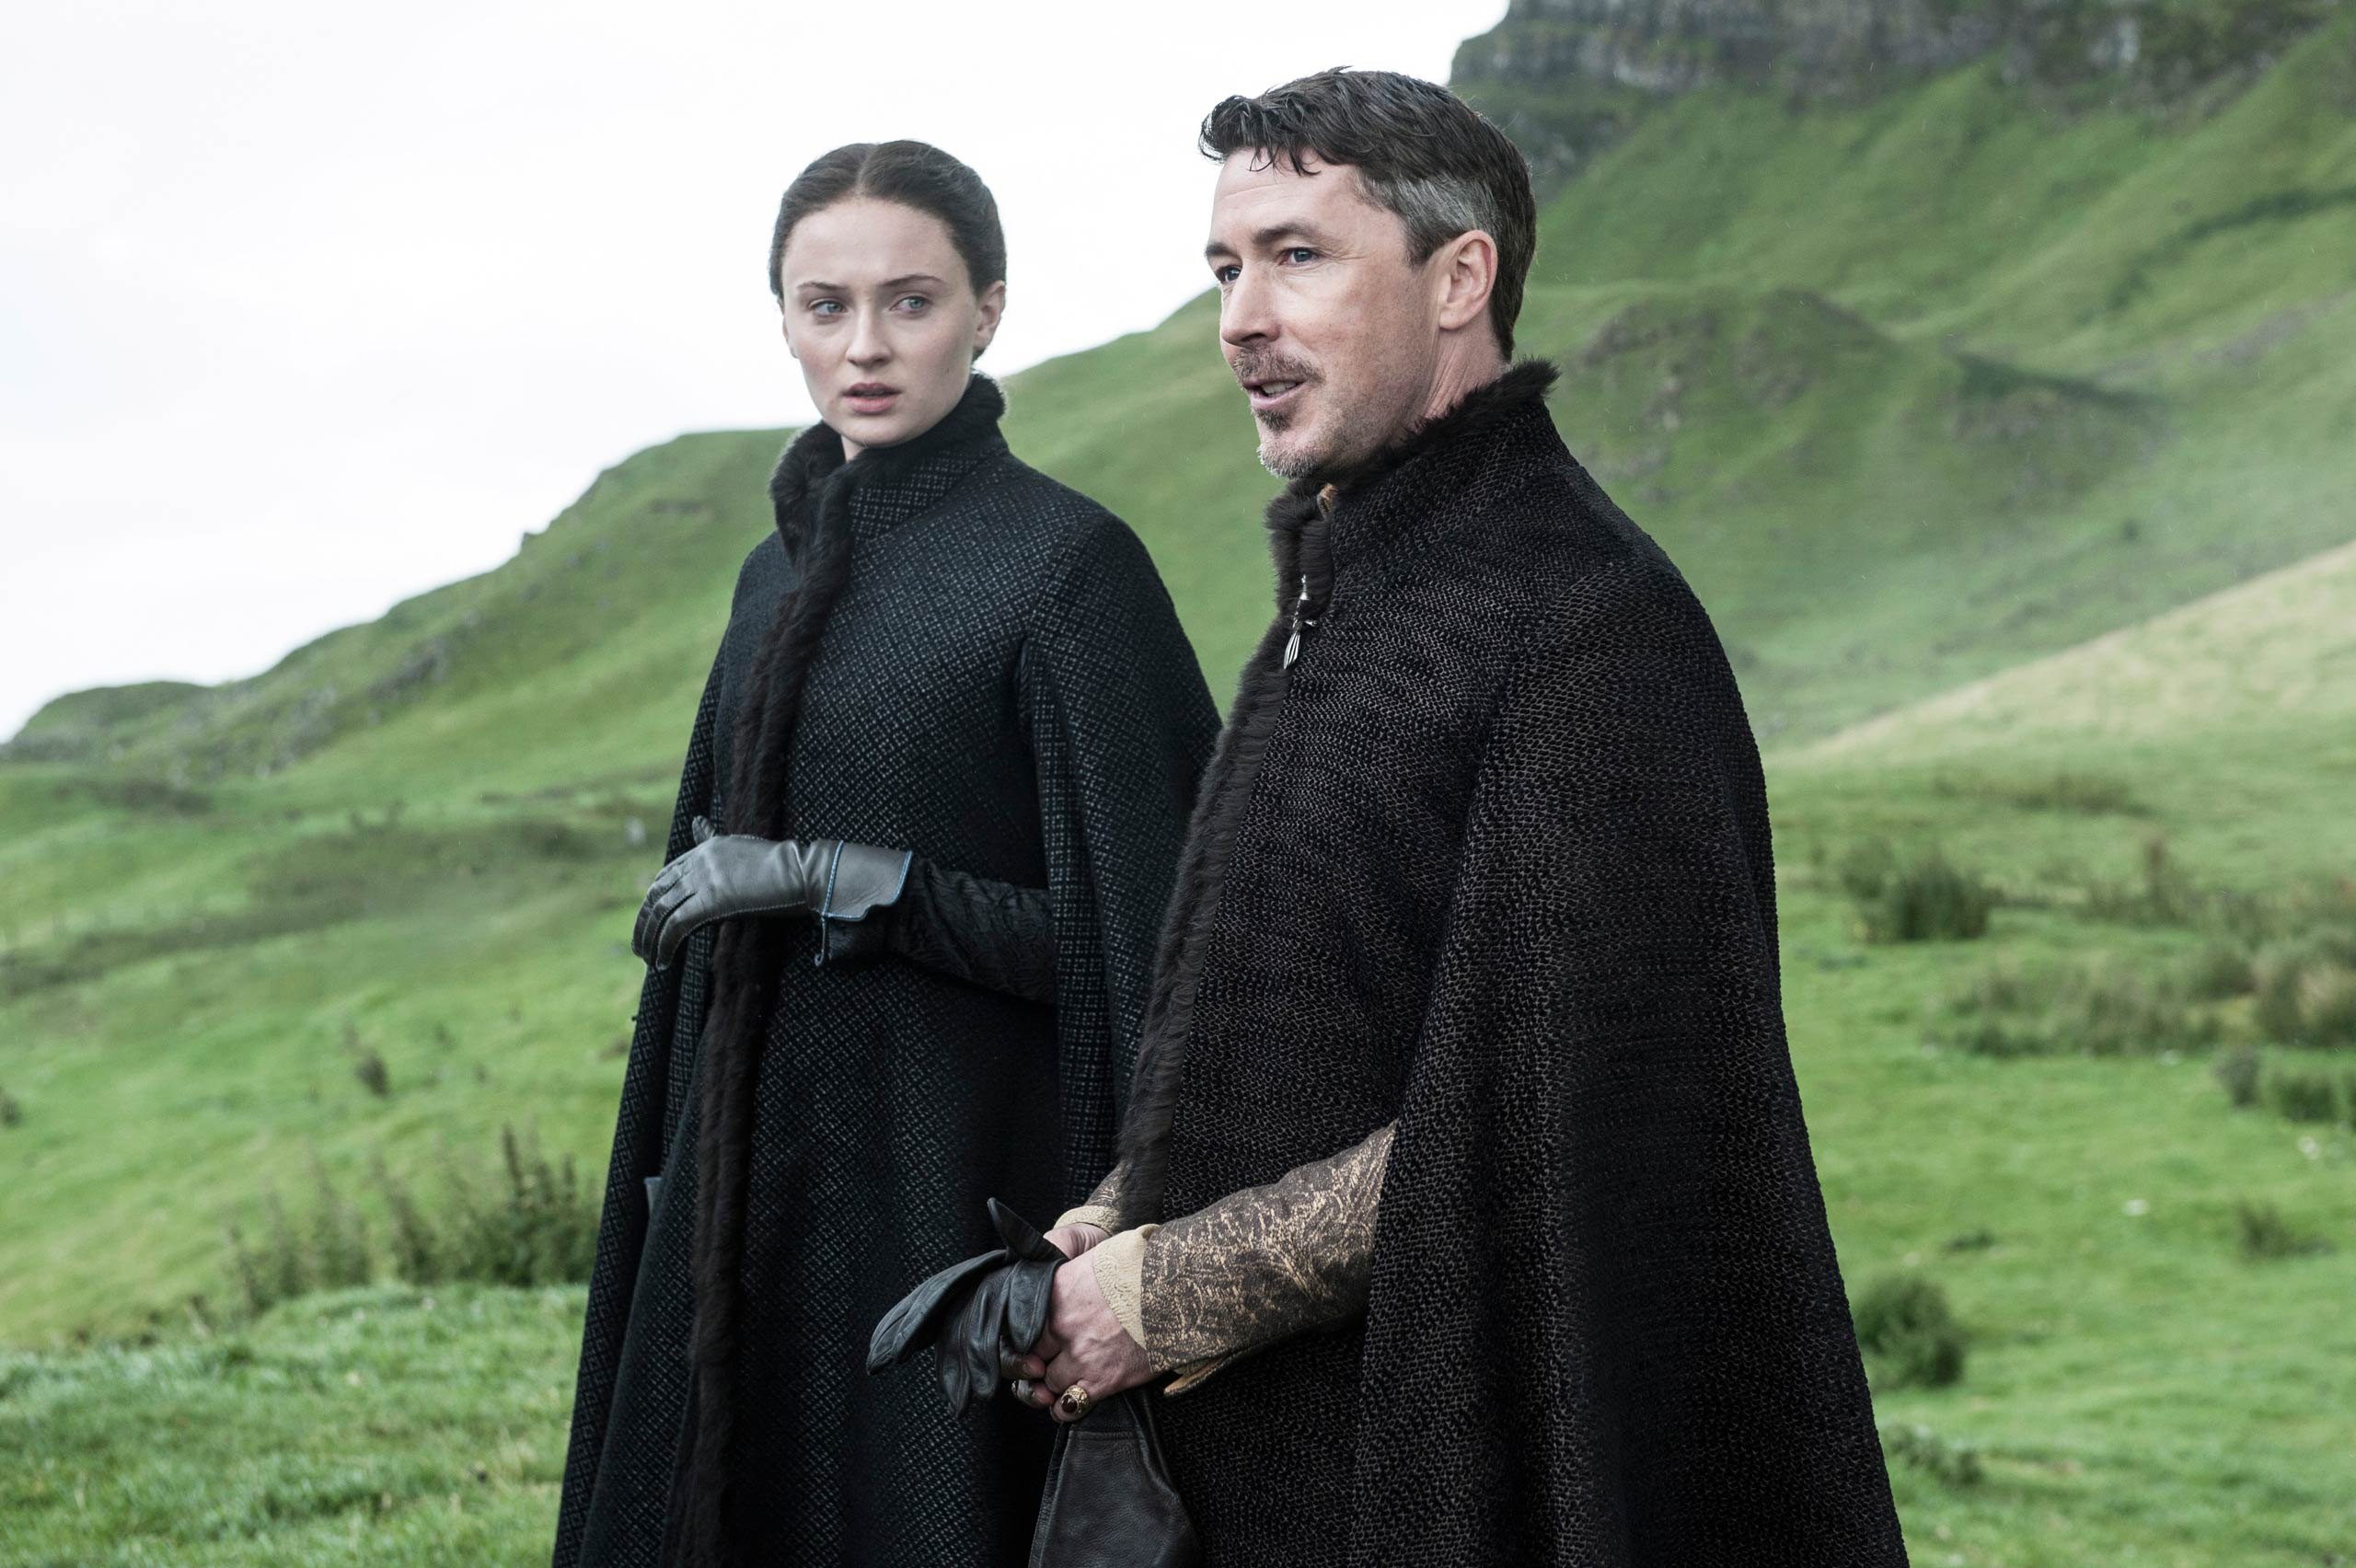 Sophie Turner as Sansa Stark and Aidan Gillen as Littlefinger.